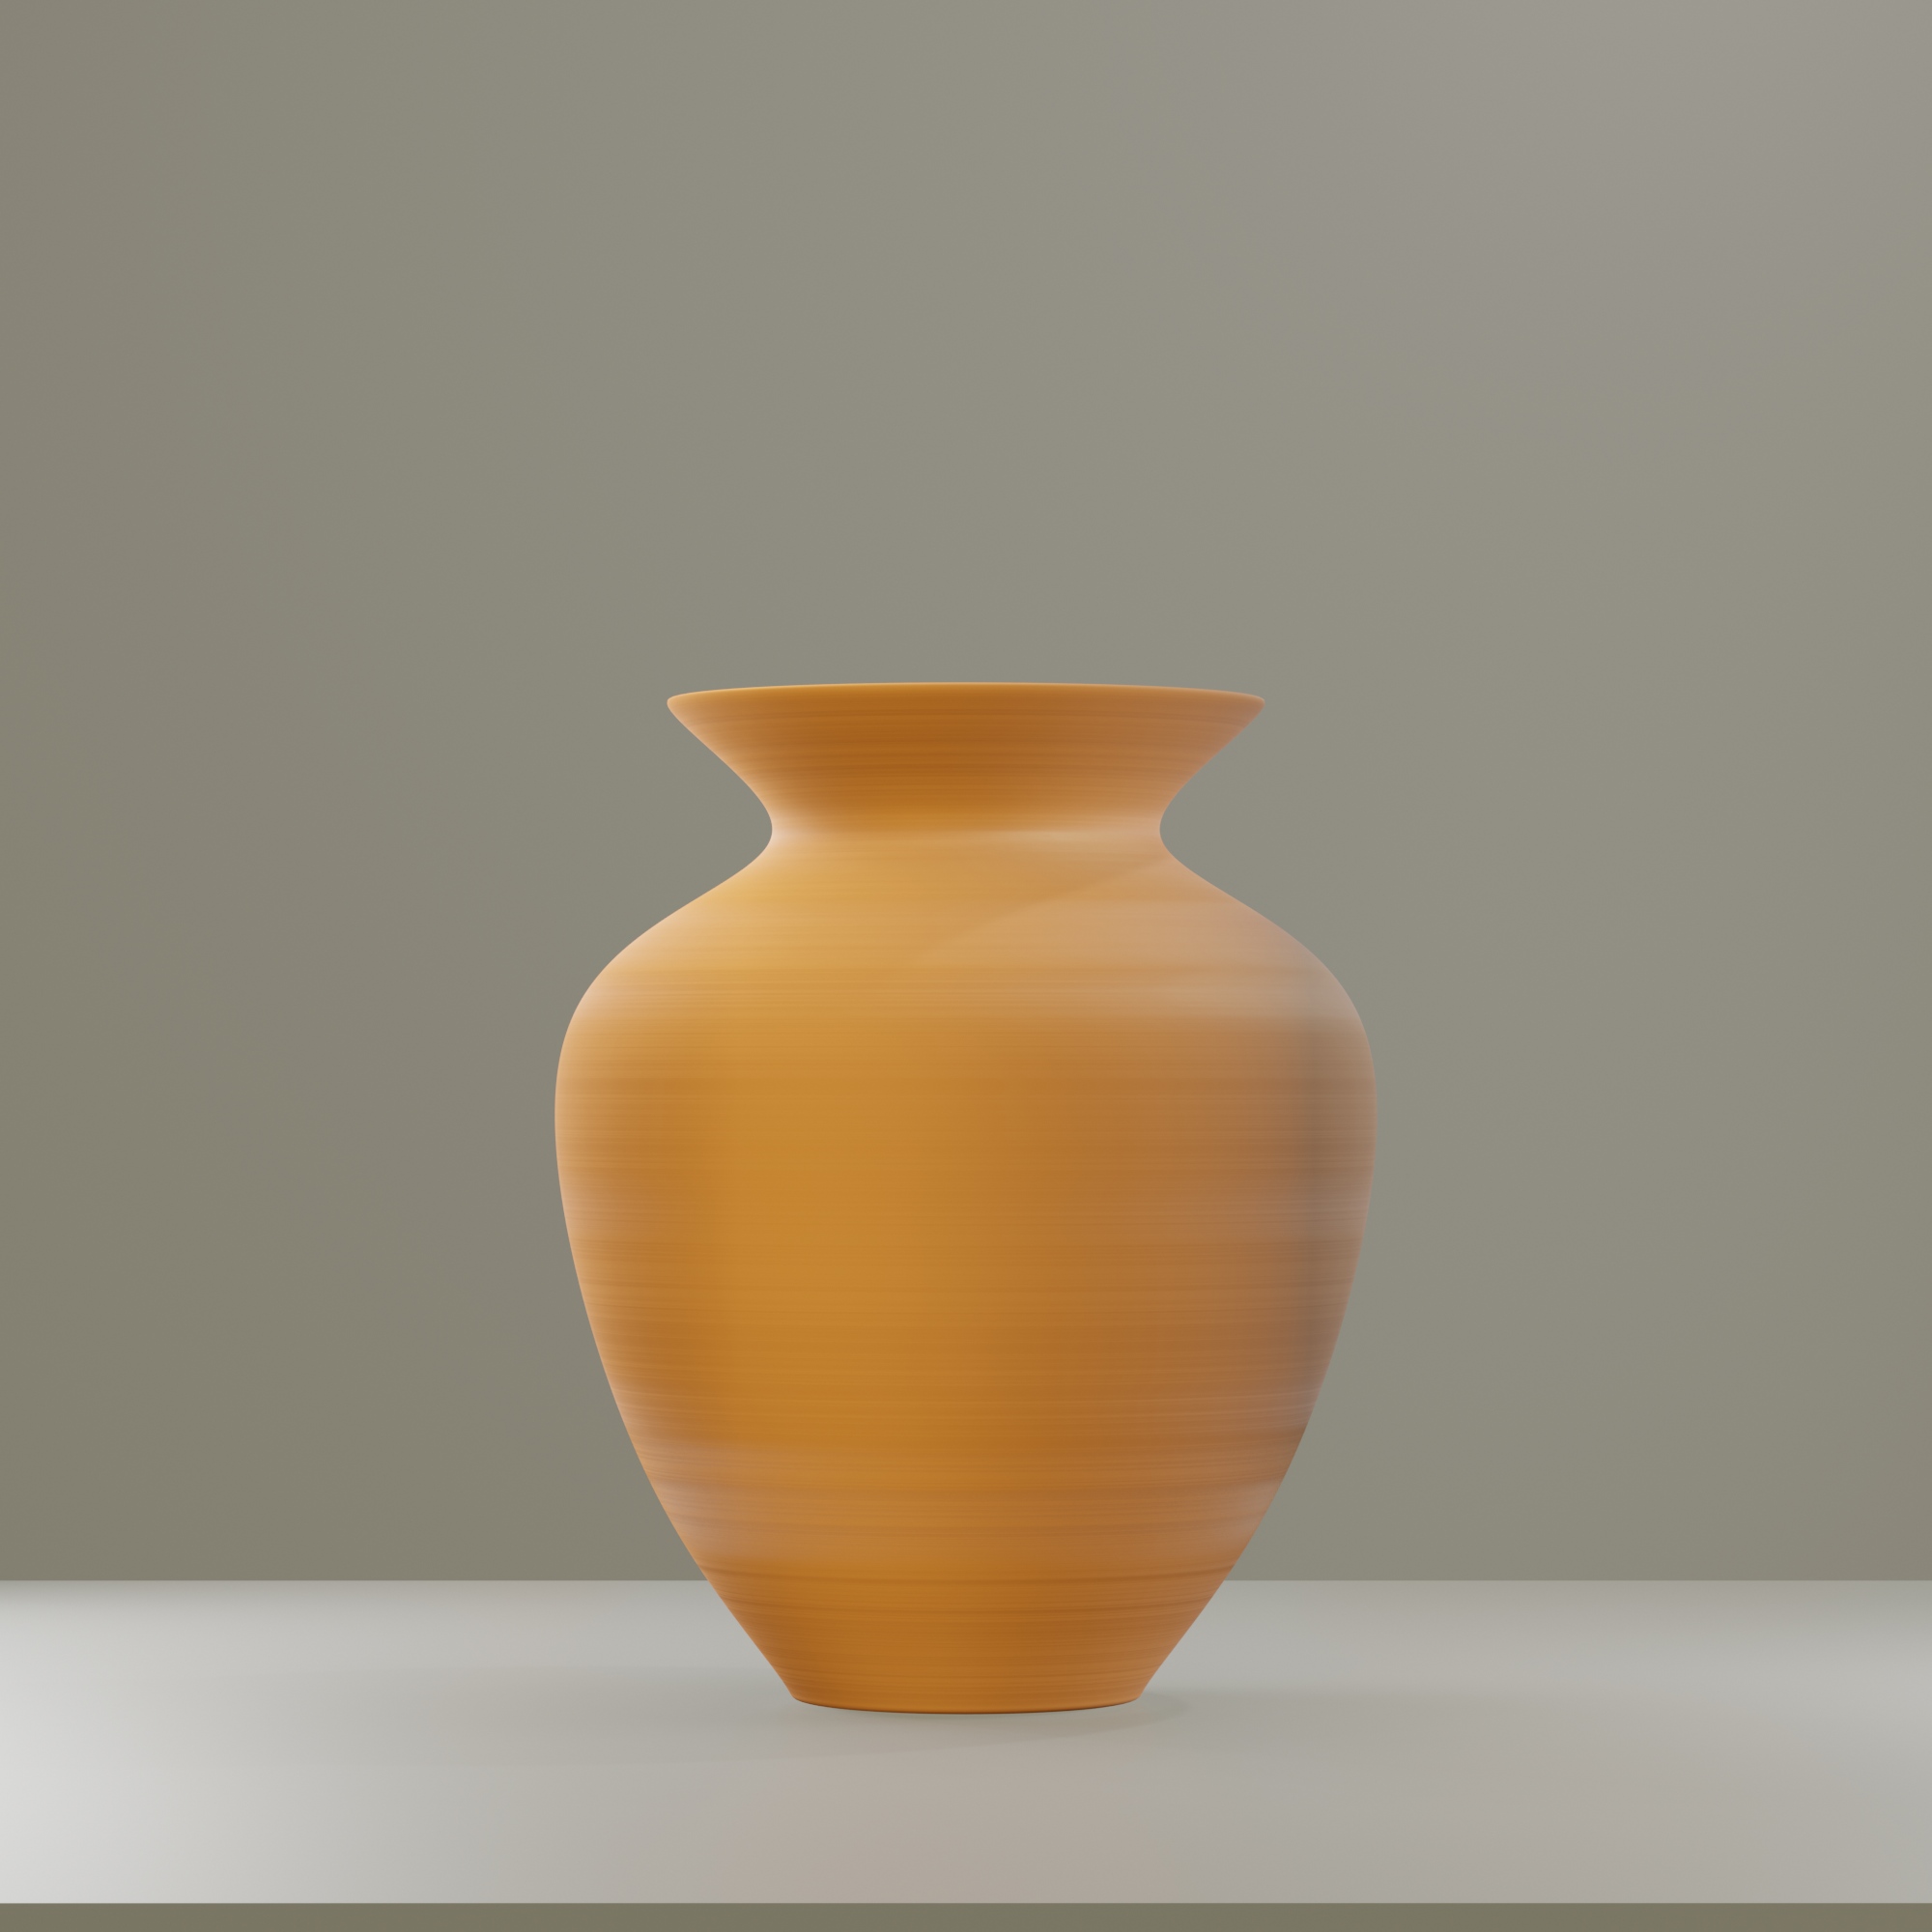 Pack of vases preview image 4